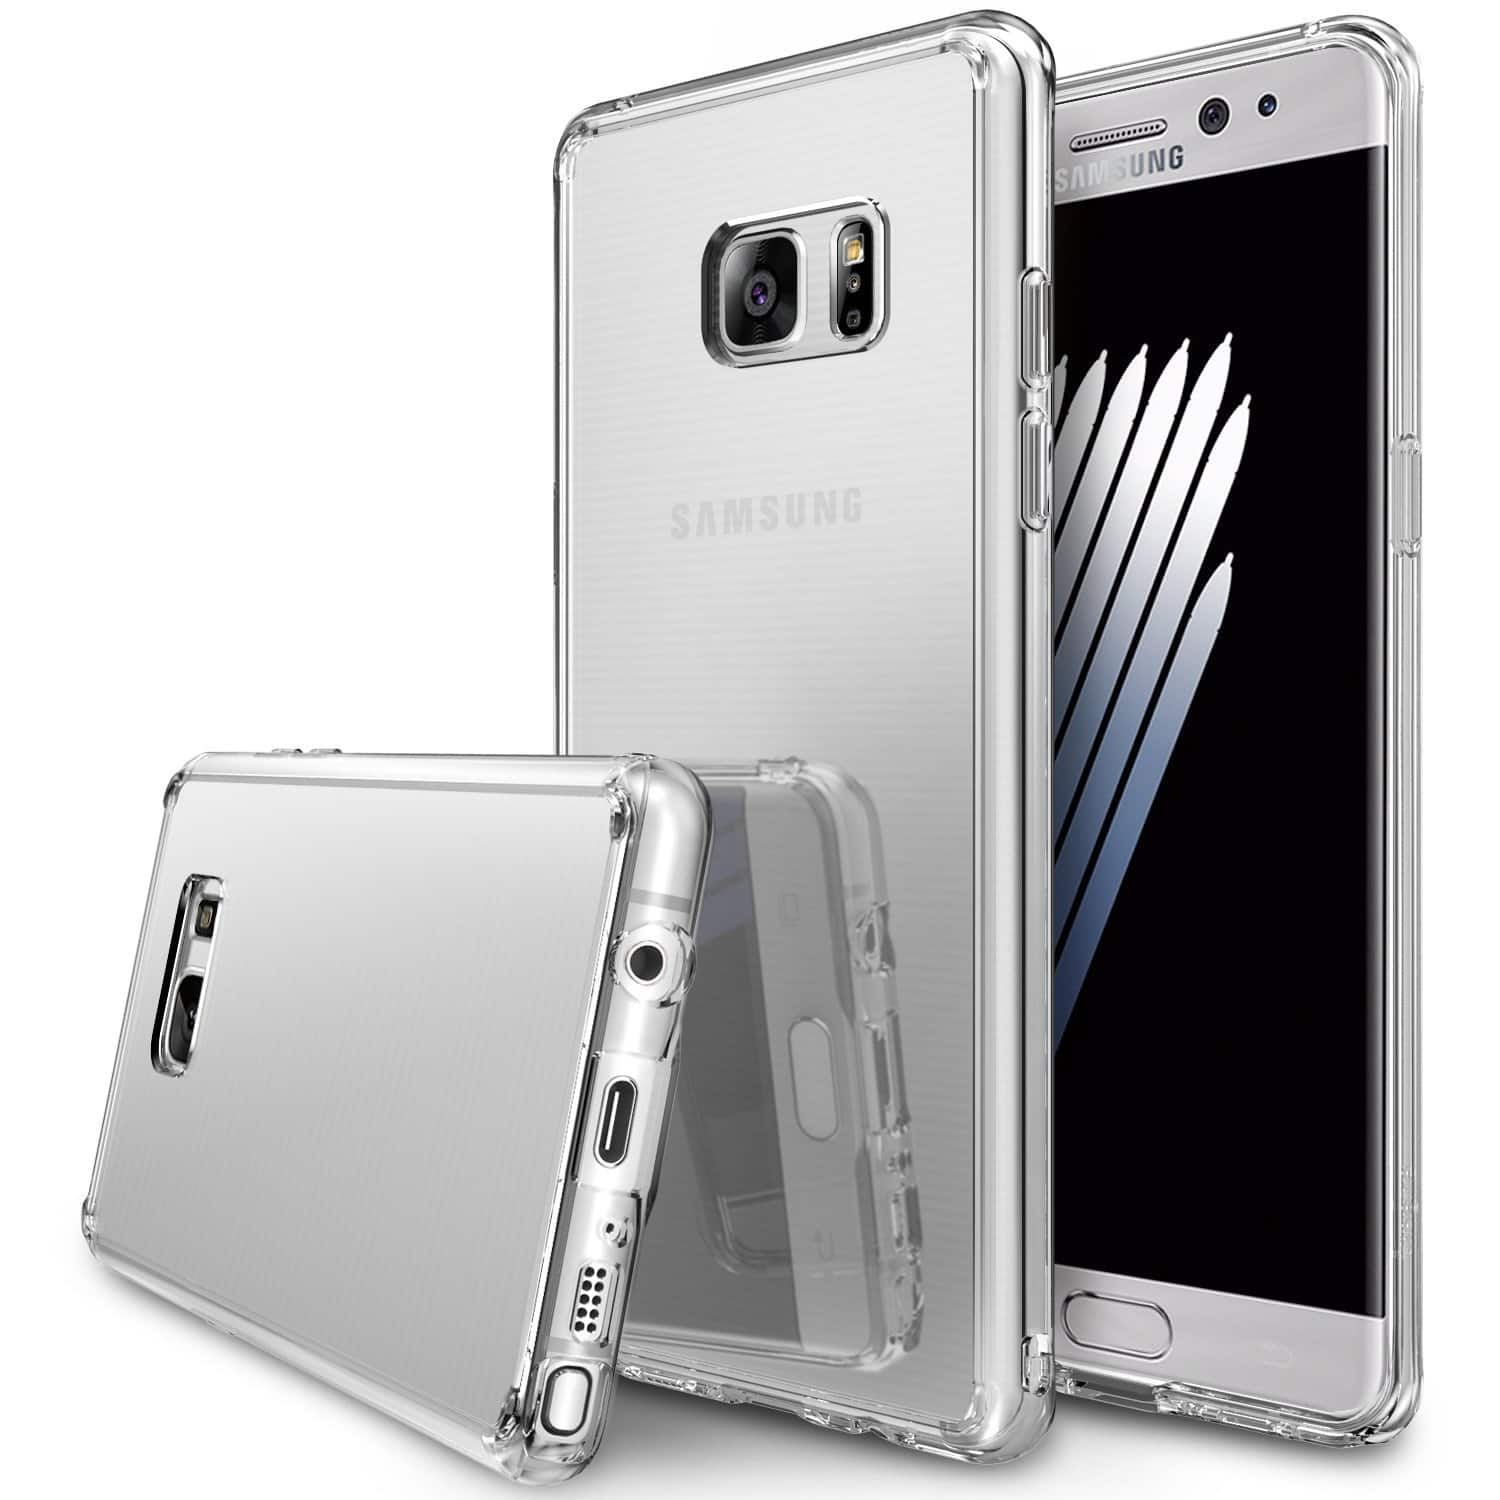 Ringke Cases for Samsung Galaxy Note 7 $2.99 + Free Shipping